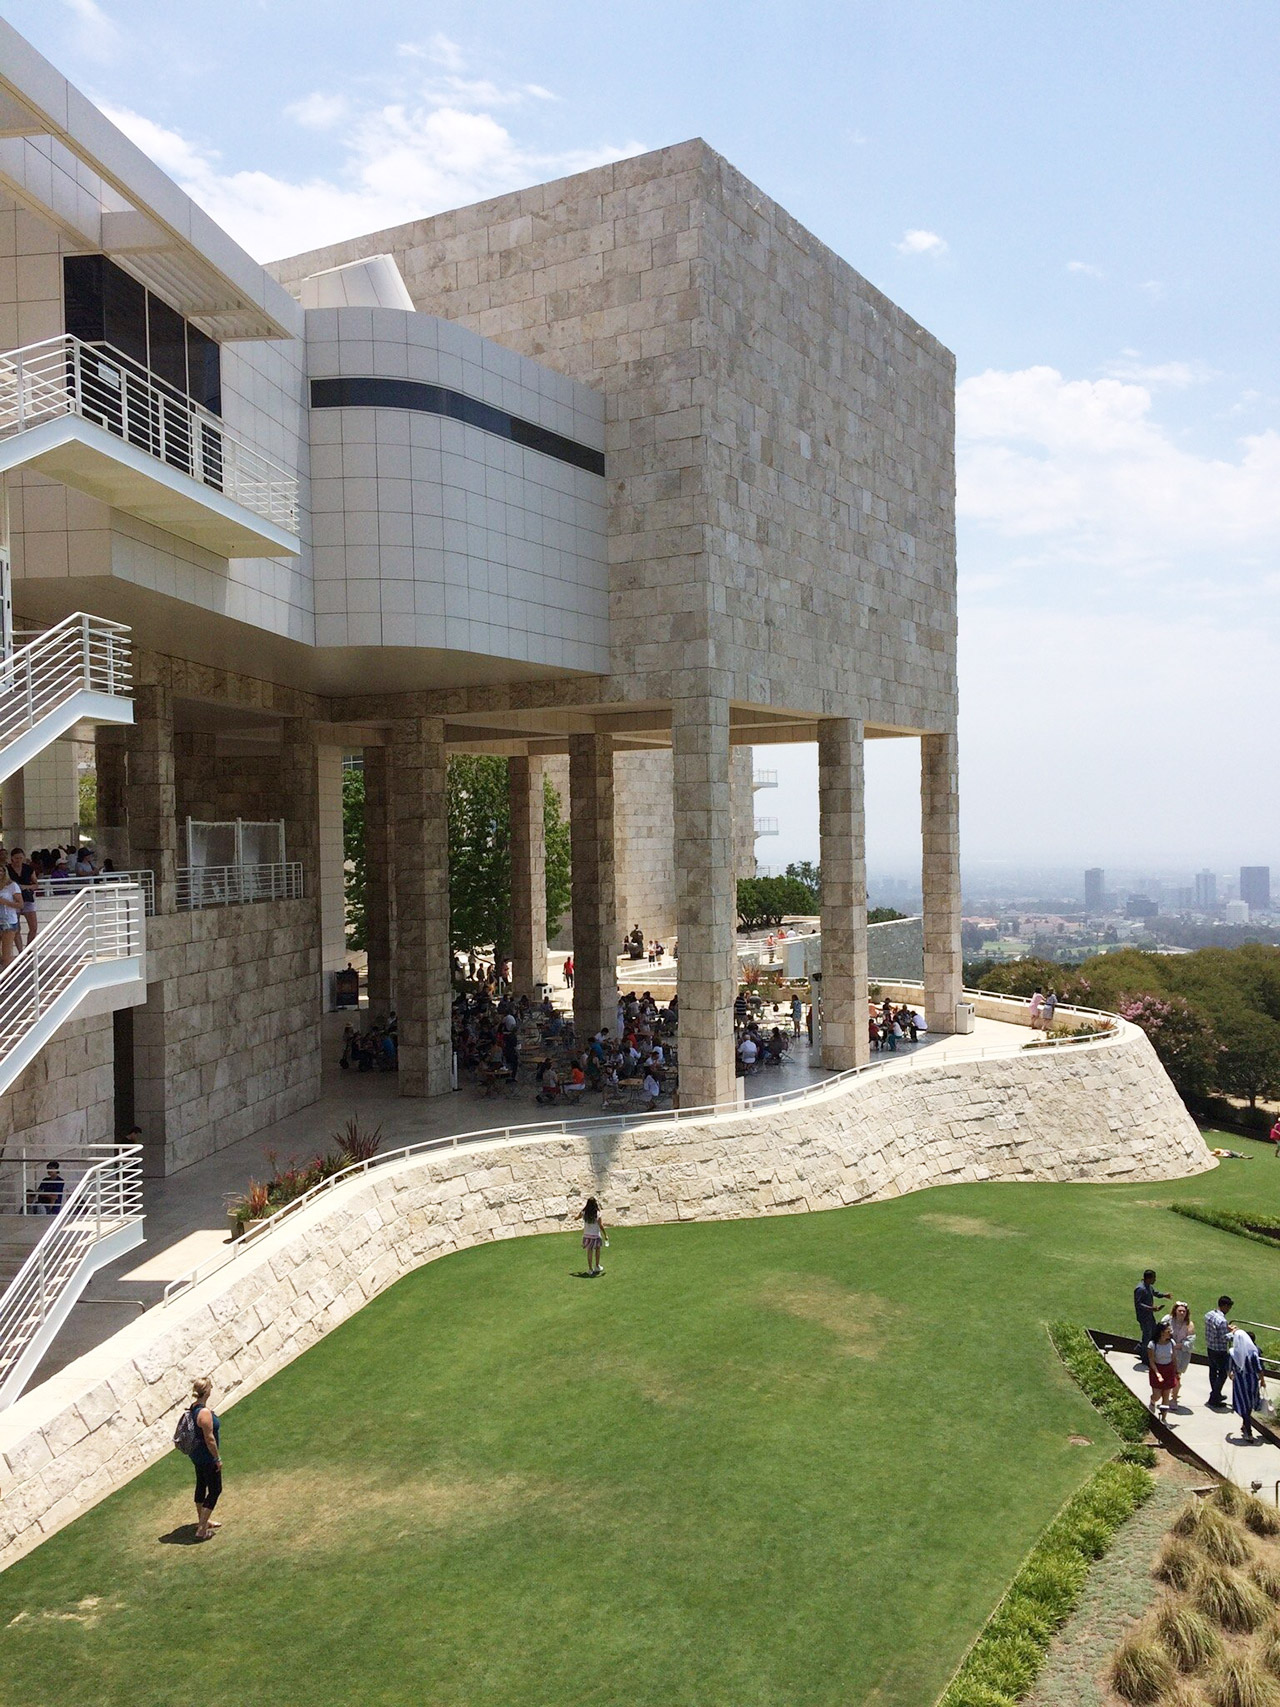 Get to The Getty